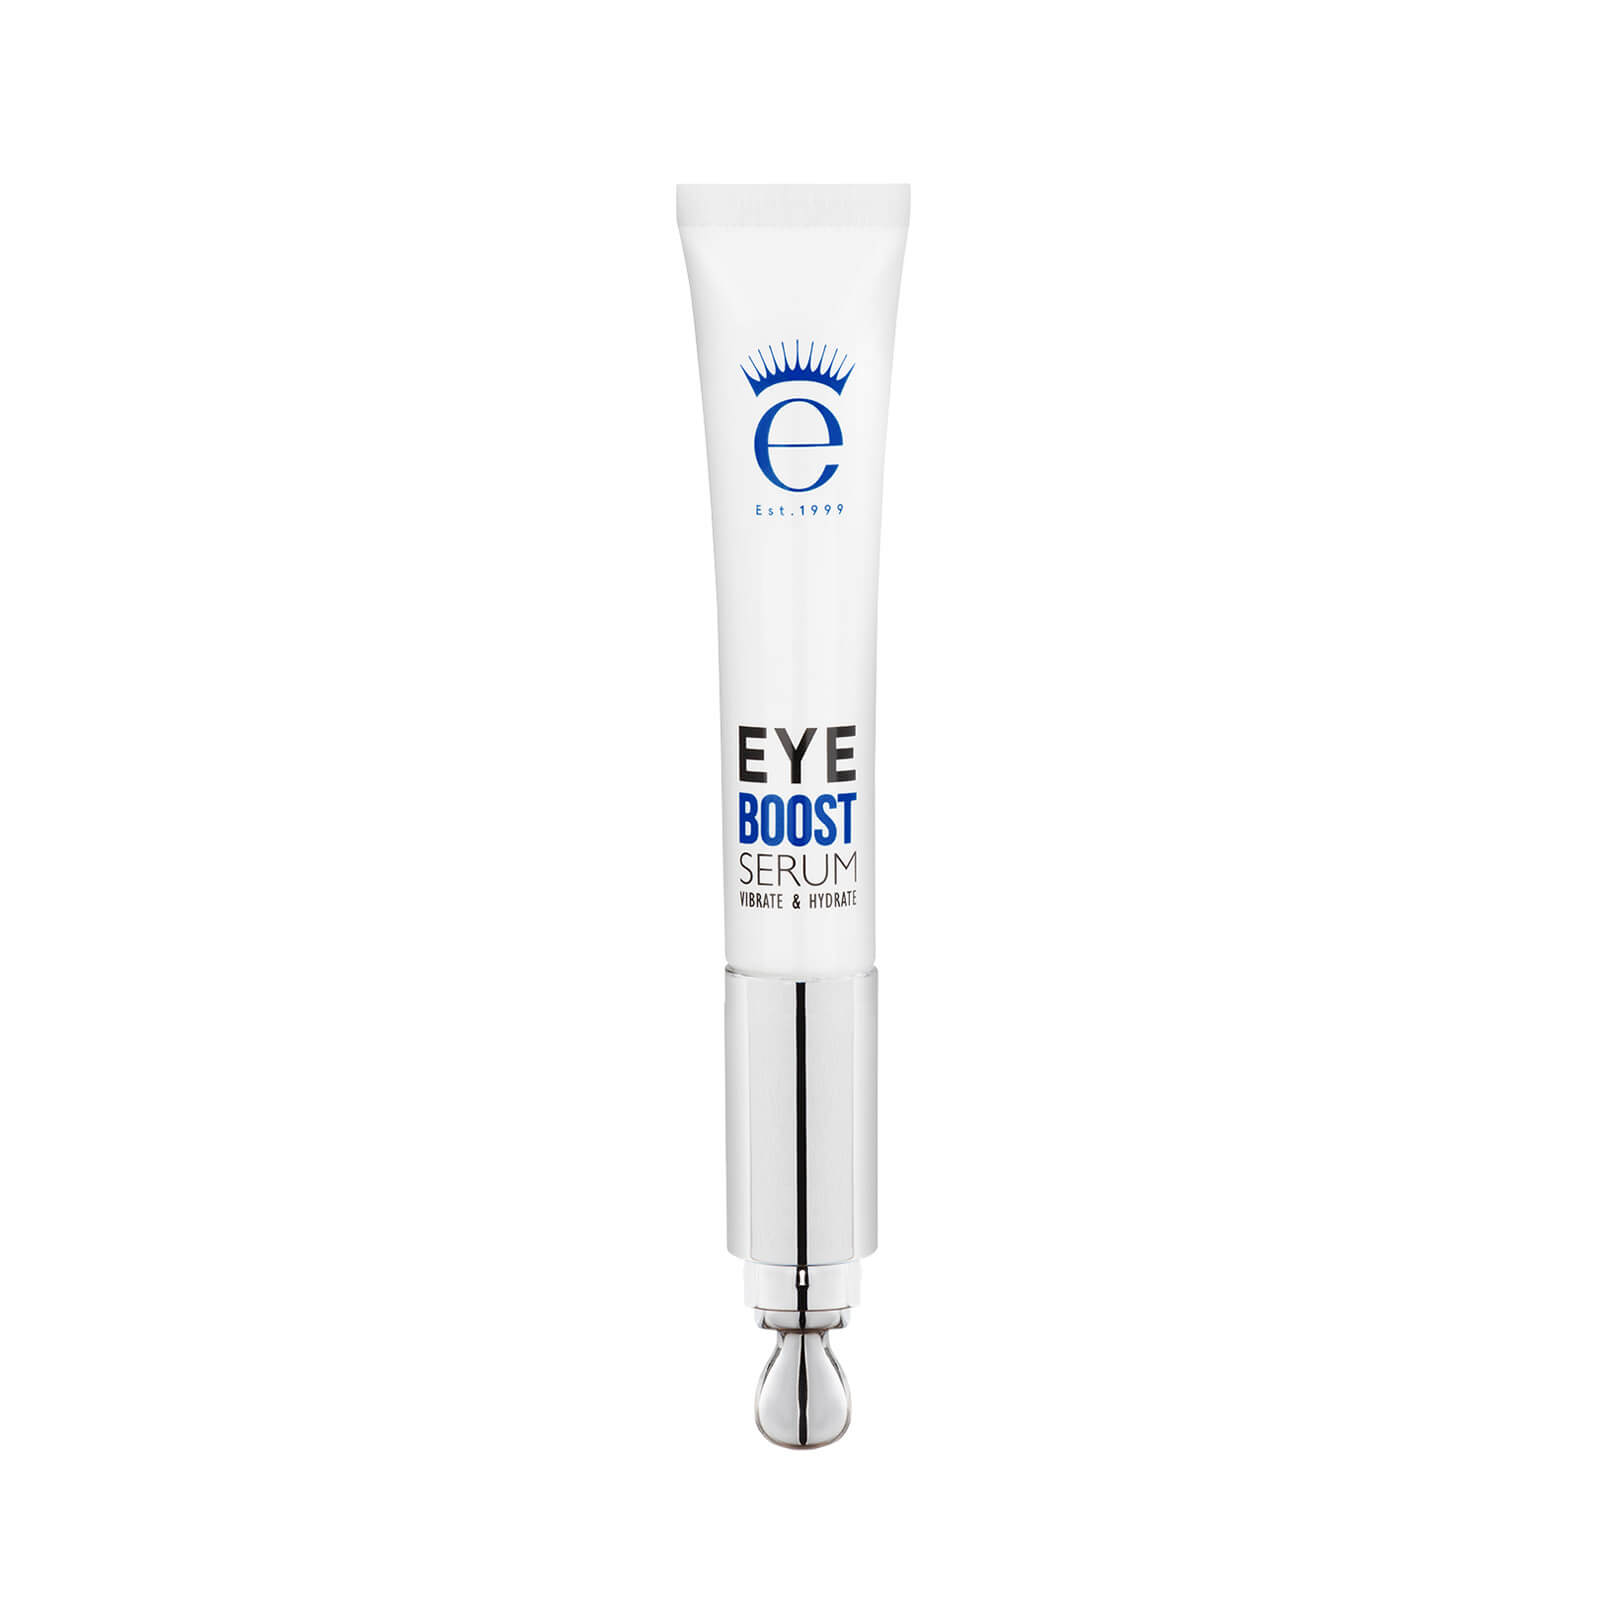 Eye Boost Serum